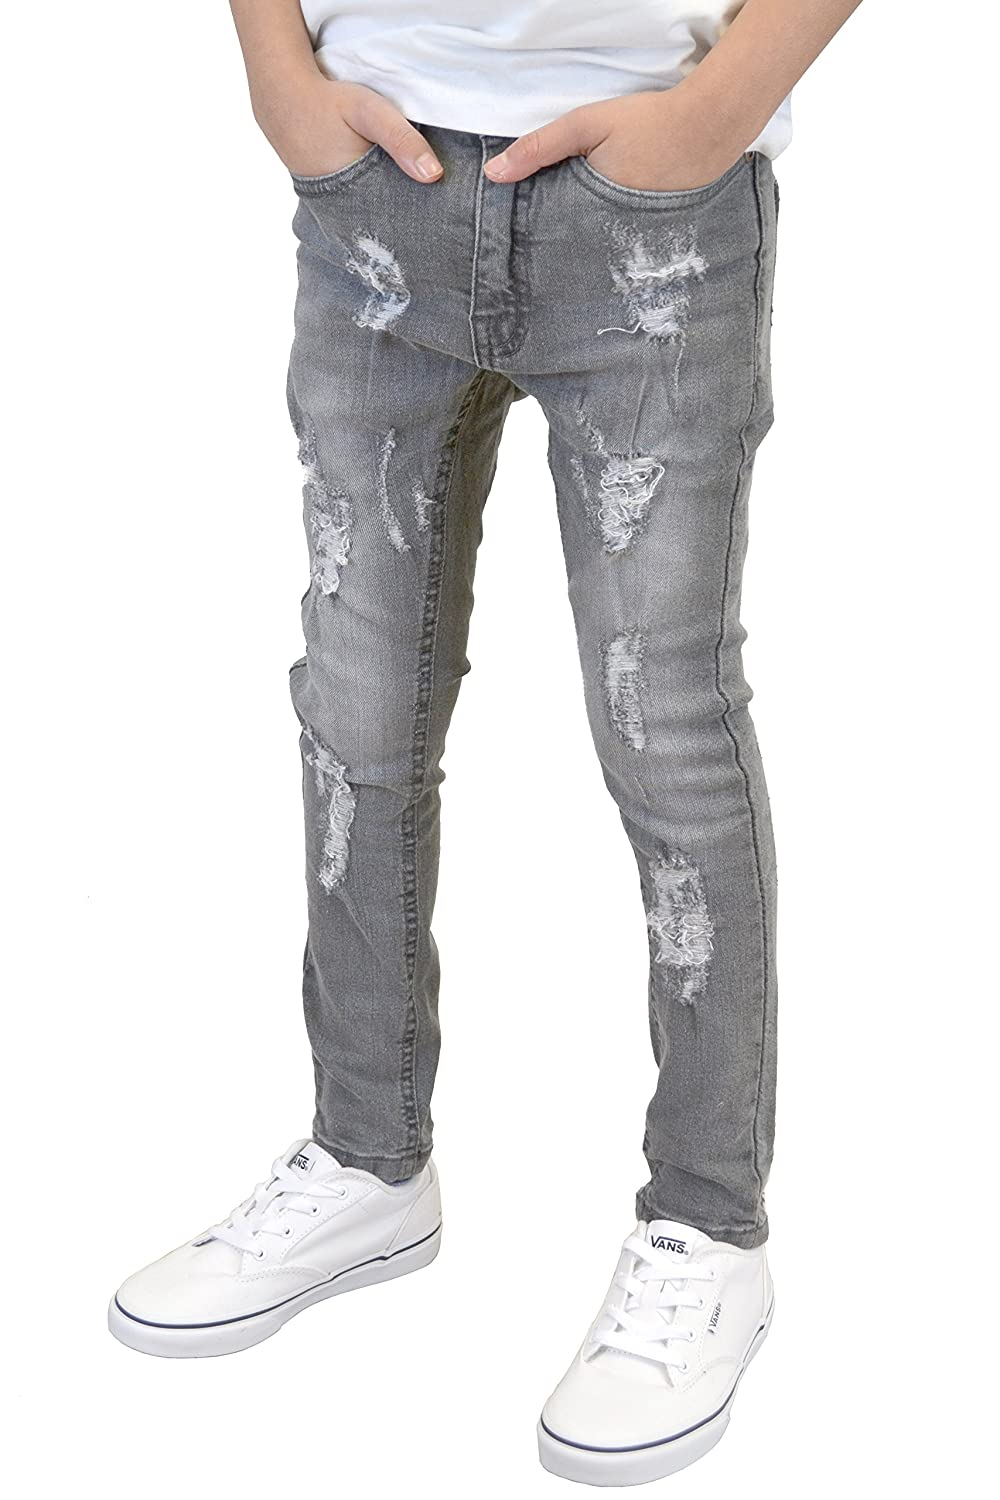 Boys/Kids/Youths Skinny Stretch Ripped/Non Ripped Designer Jeans